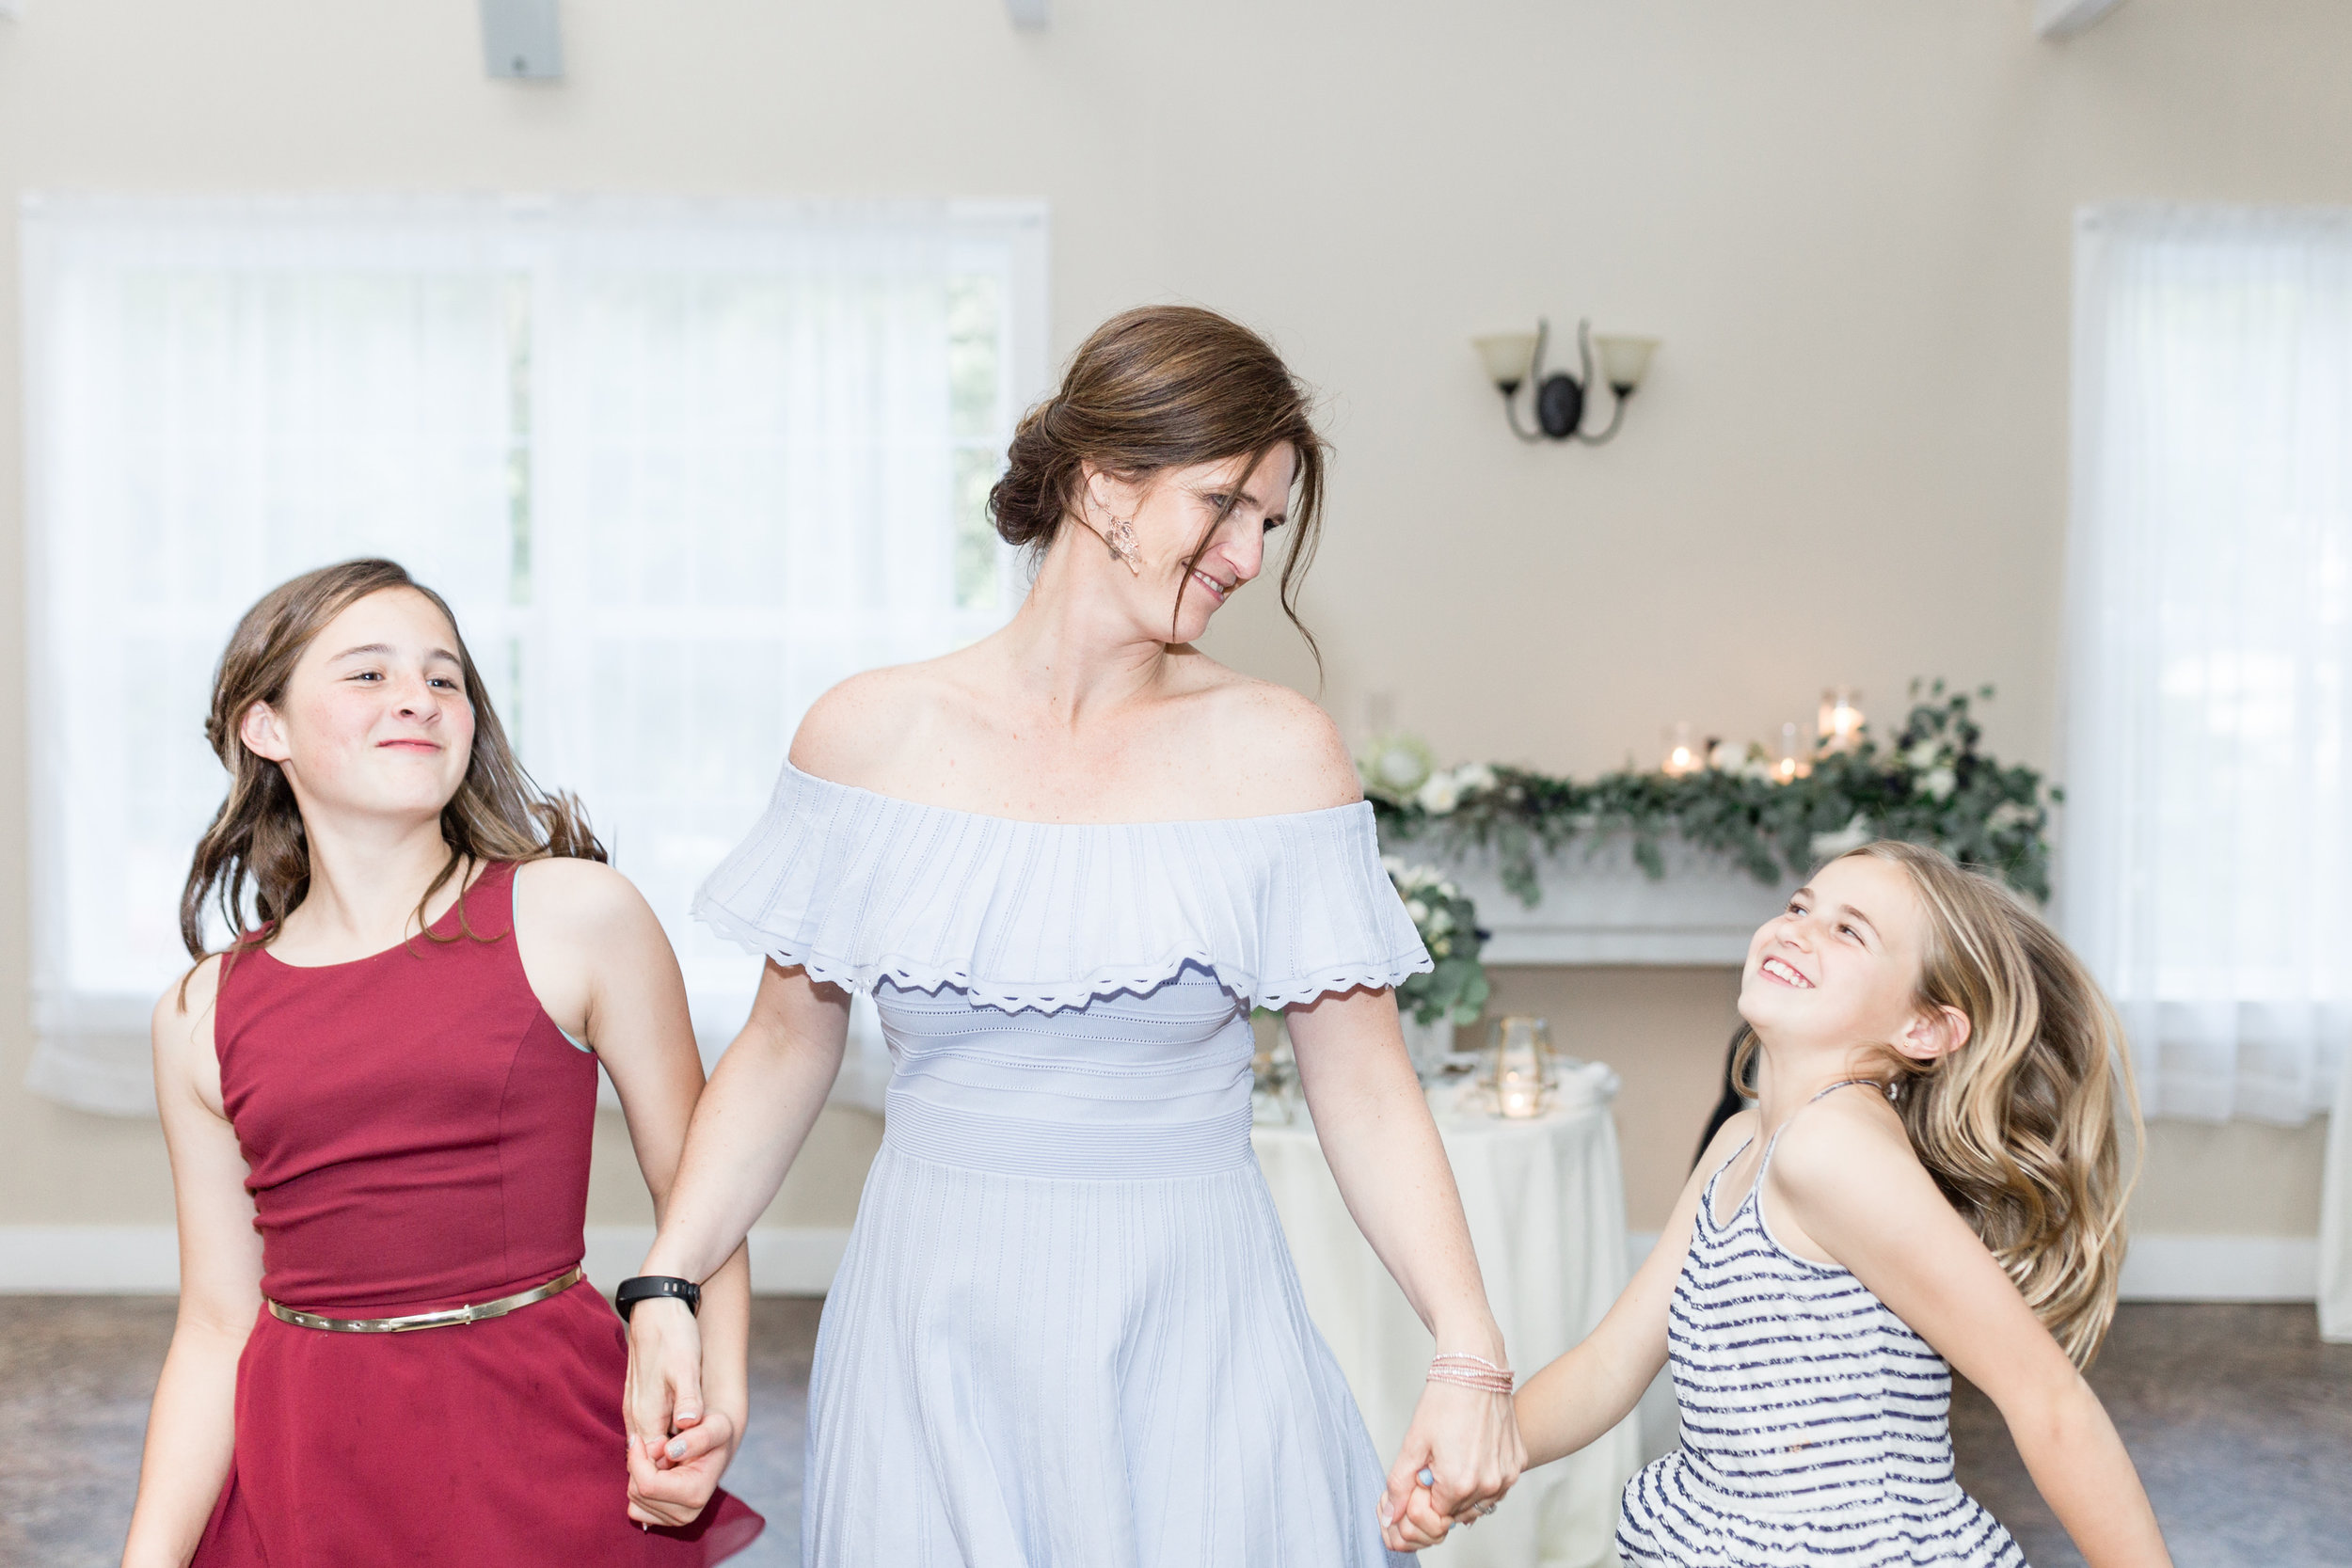 Family dancing and celebrating at Pittsburgh wedding planned by Exhale Events. Find more wedding inspiration at exhale-events.com!